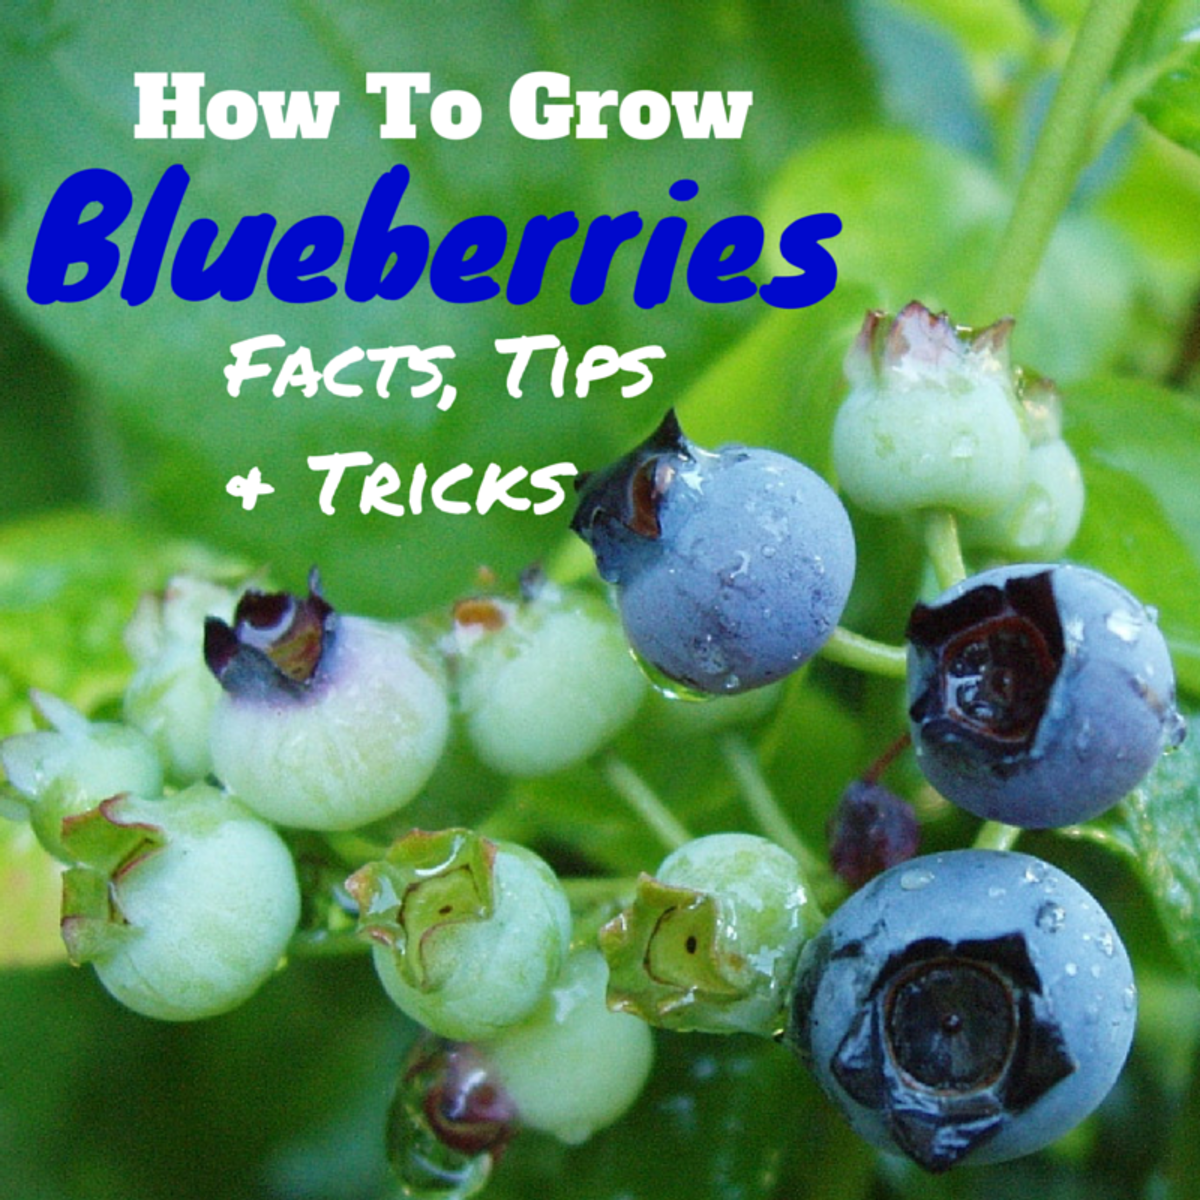 Blueberries, the superfood you can grow in your own backyard!